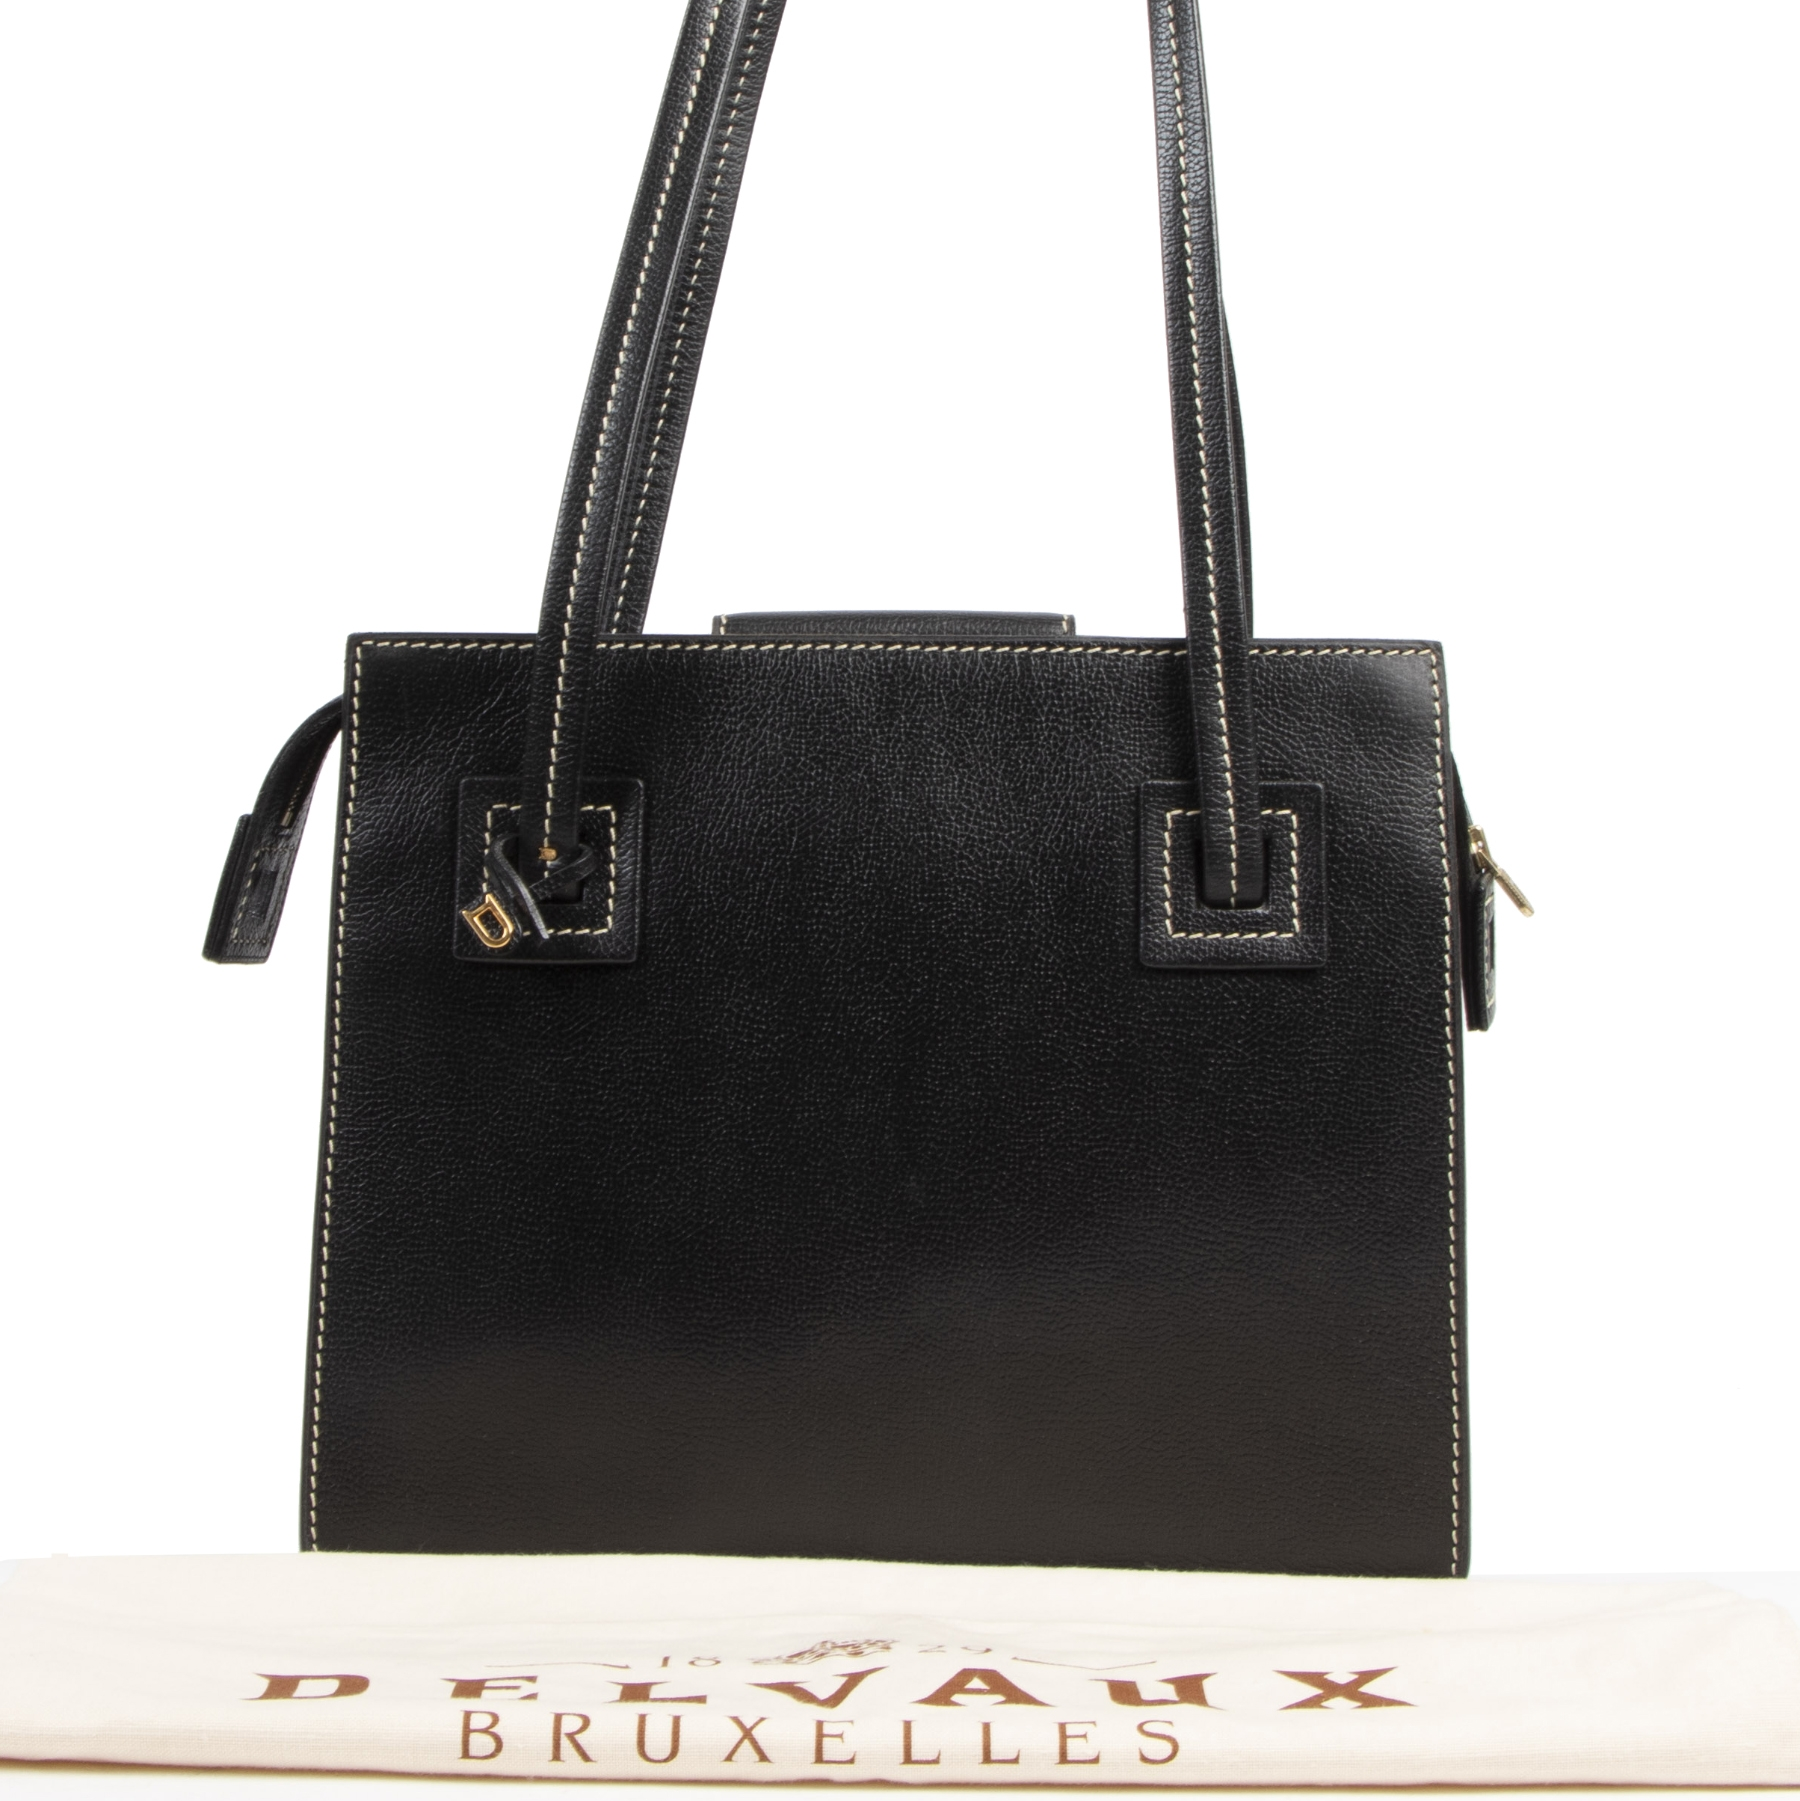 Authentic second-hand vintage Delvaux Black Double Strap Shoulder Bag buy online webshop LabelLOV